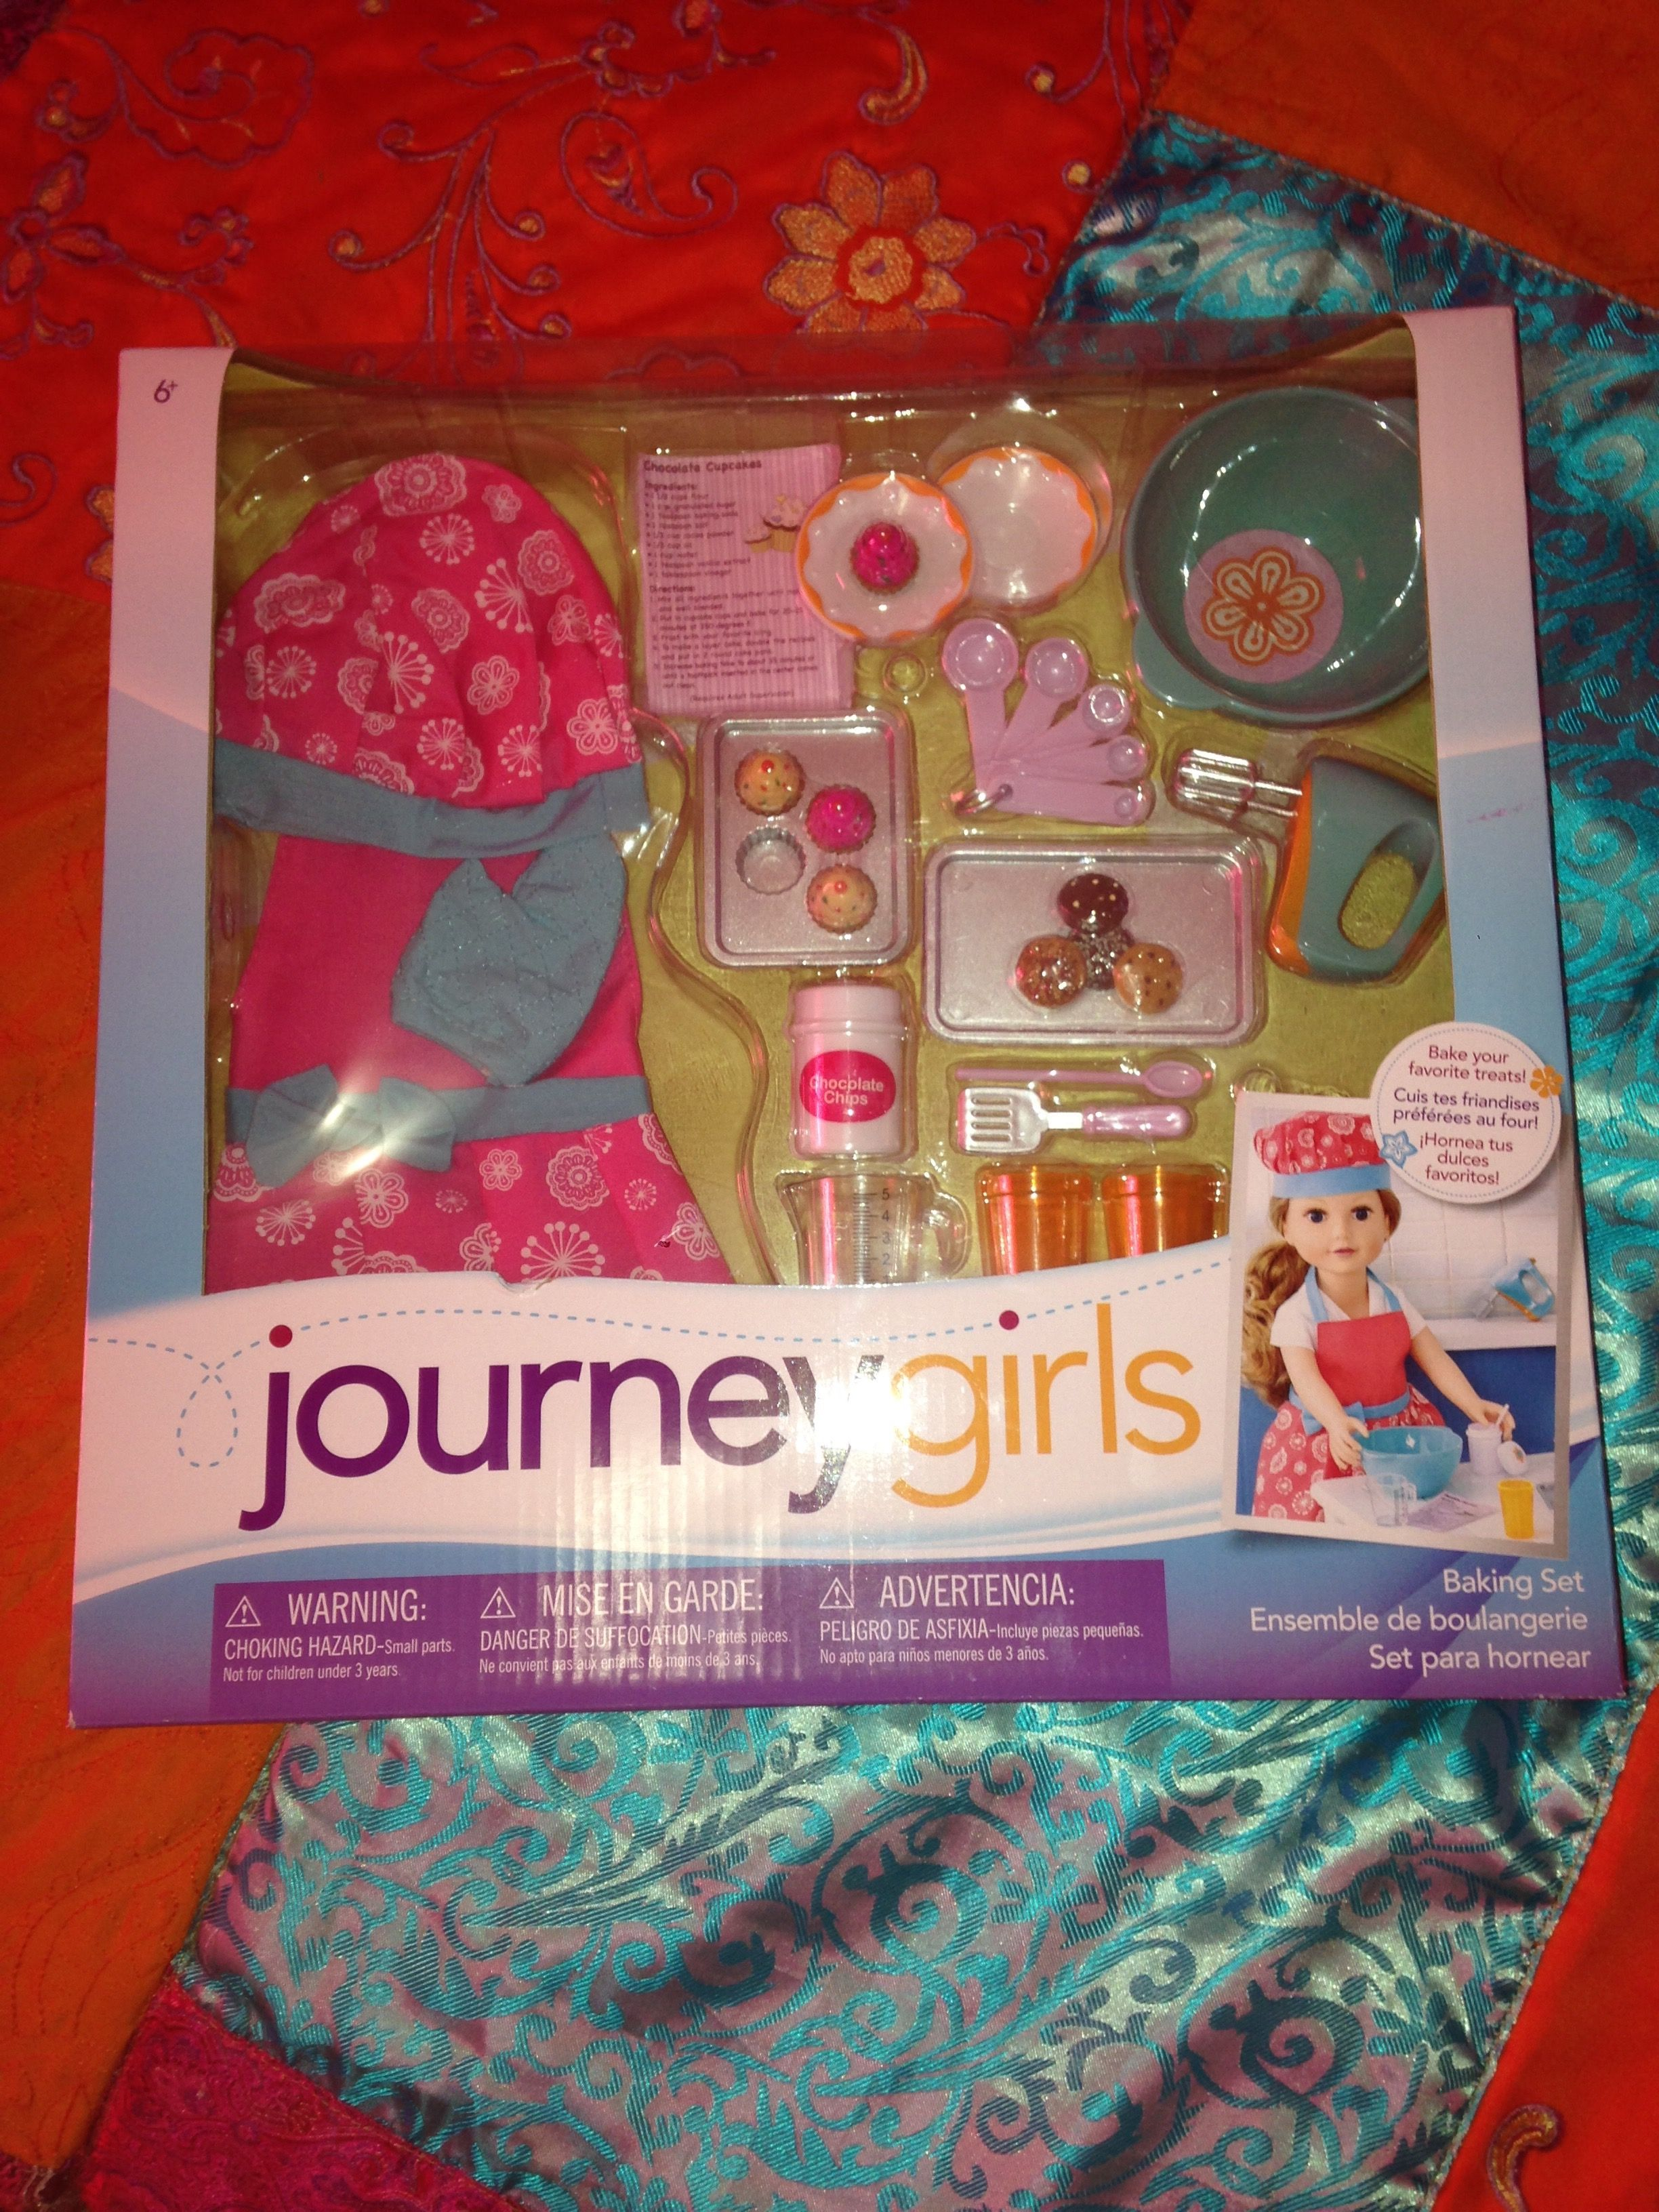 Toys For Girls From Walmart : This journey girls baking set is too cute found it at